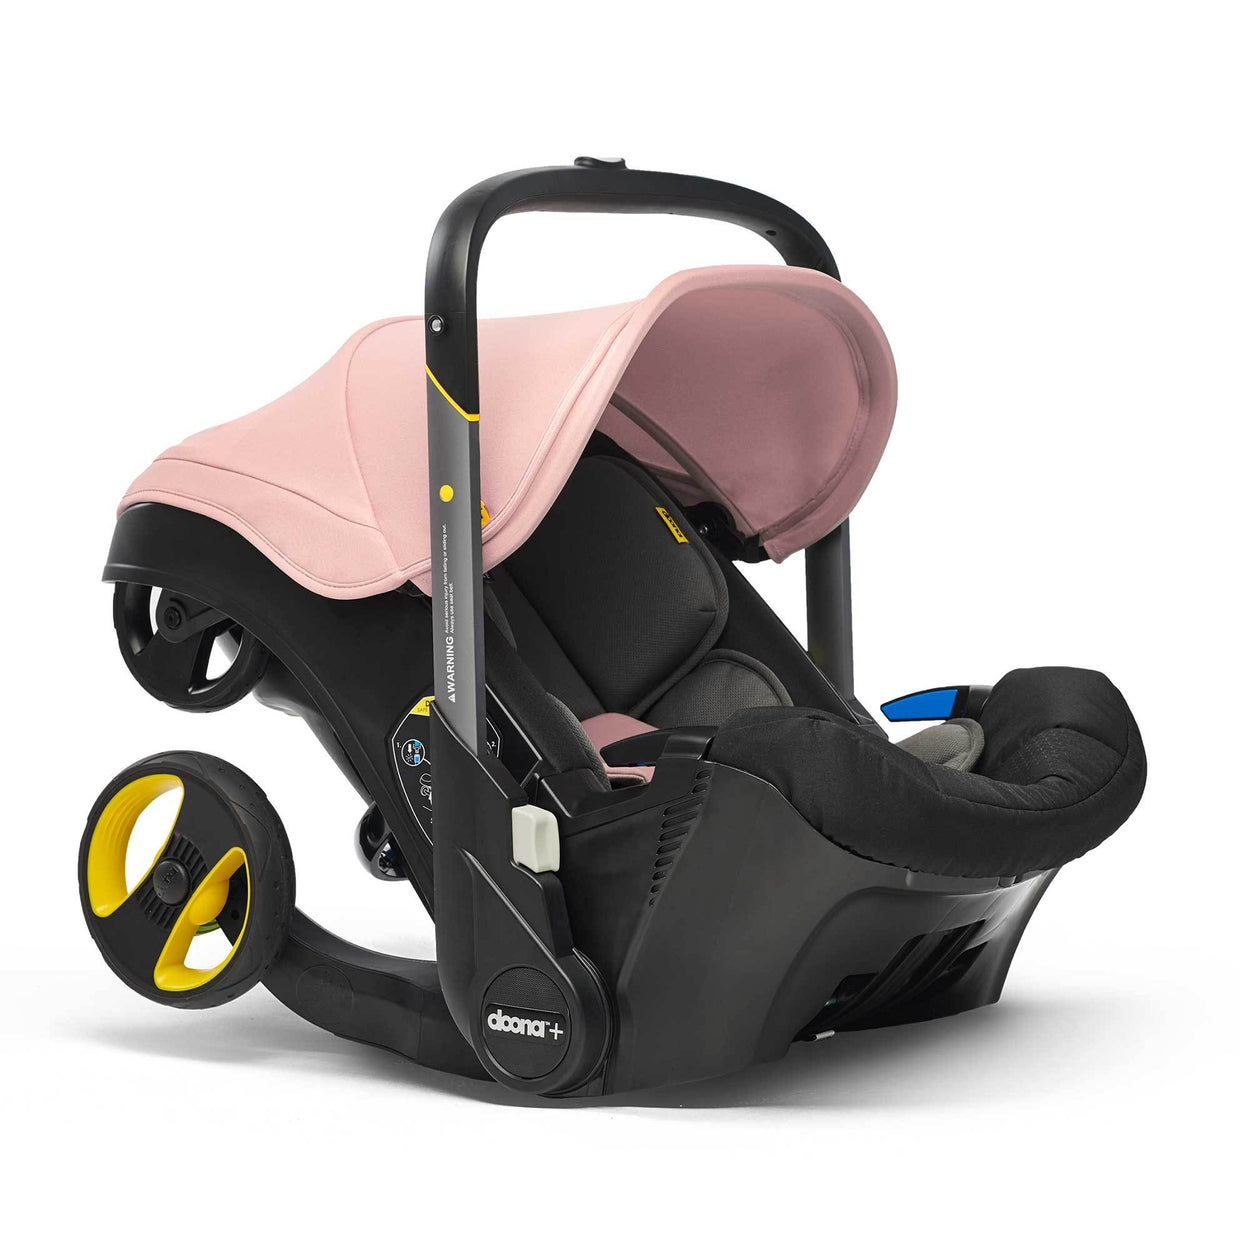 doona infant car seat all new 2019 collection blush pink